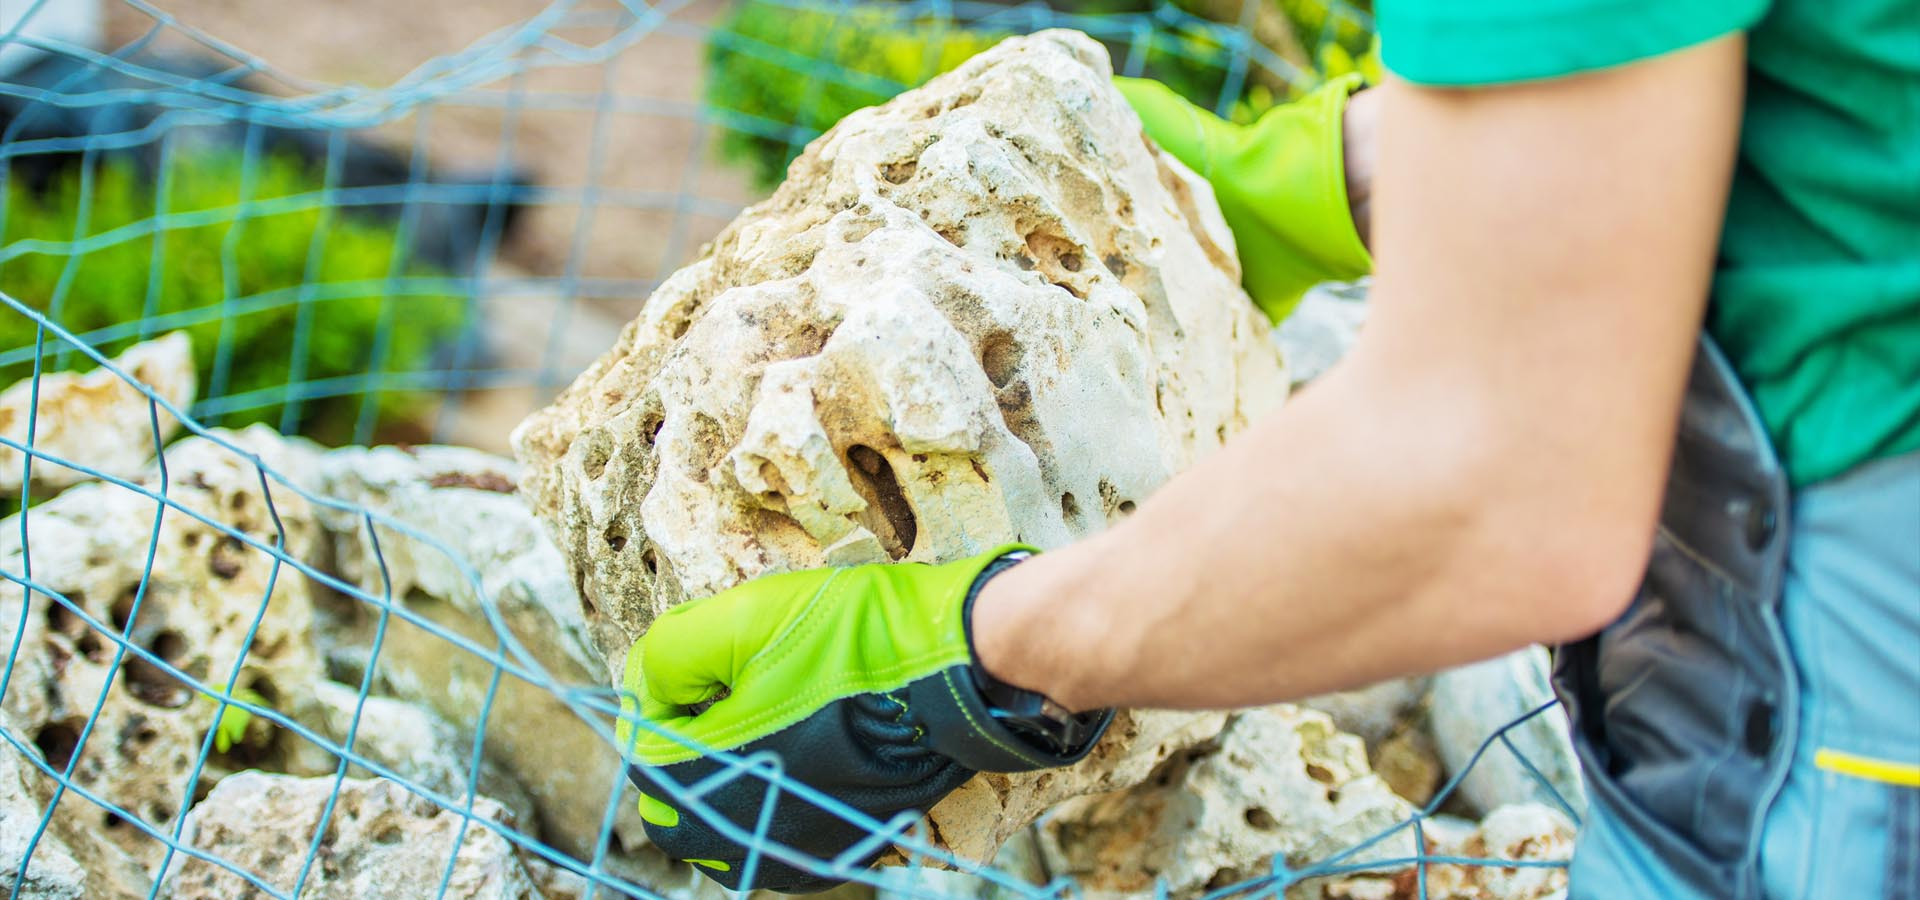 How to build a garden rockery for beginners: The ultimate guide